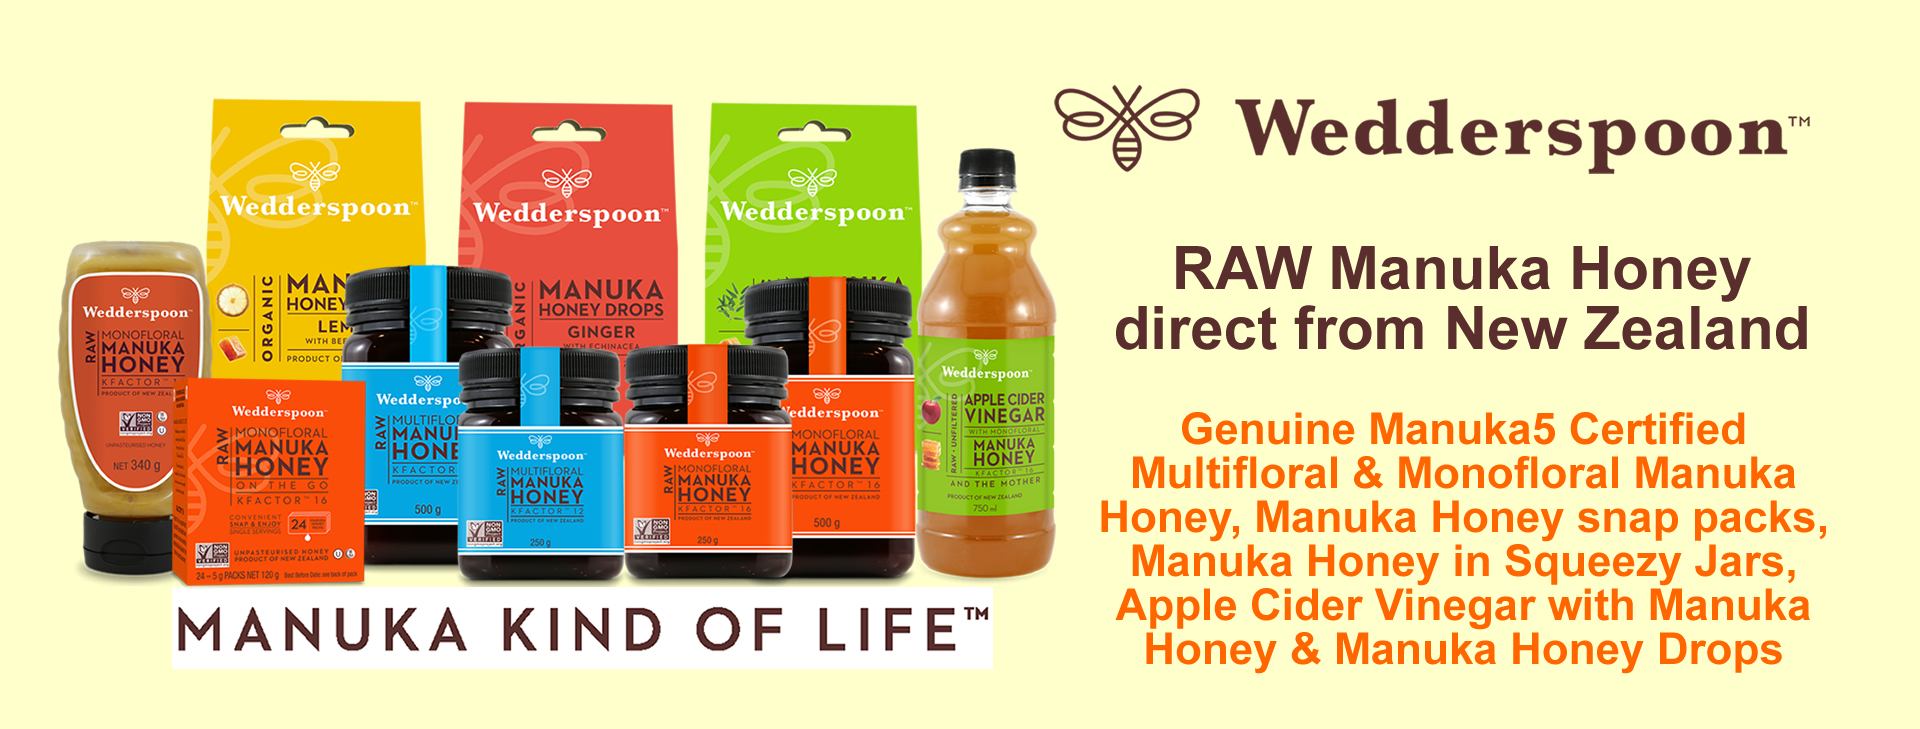 Wedderspoon RAW Manuka Honey, the premium brand from New Zealand which includes Manuka Honey, Manuka Honey snap packs, Apple Cider Vinegar with Manuka Honey and Manuka Honey flavoured drops. Check out the full range - click here for more info.